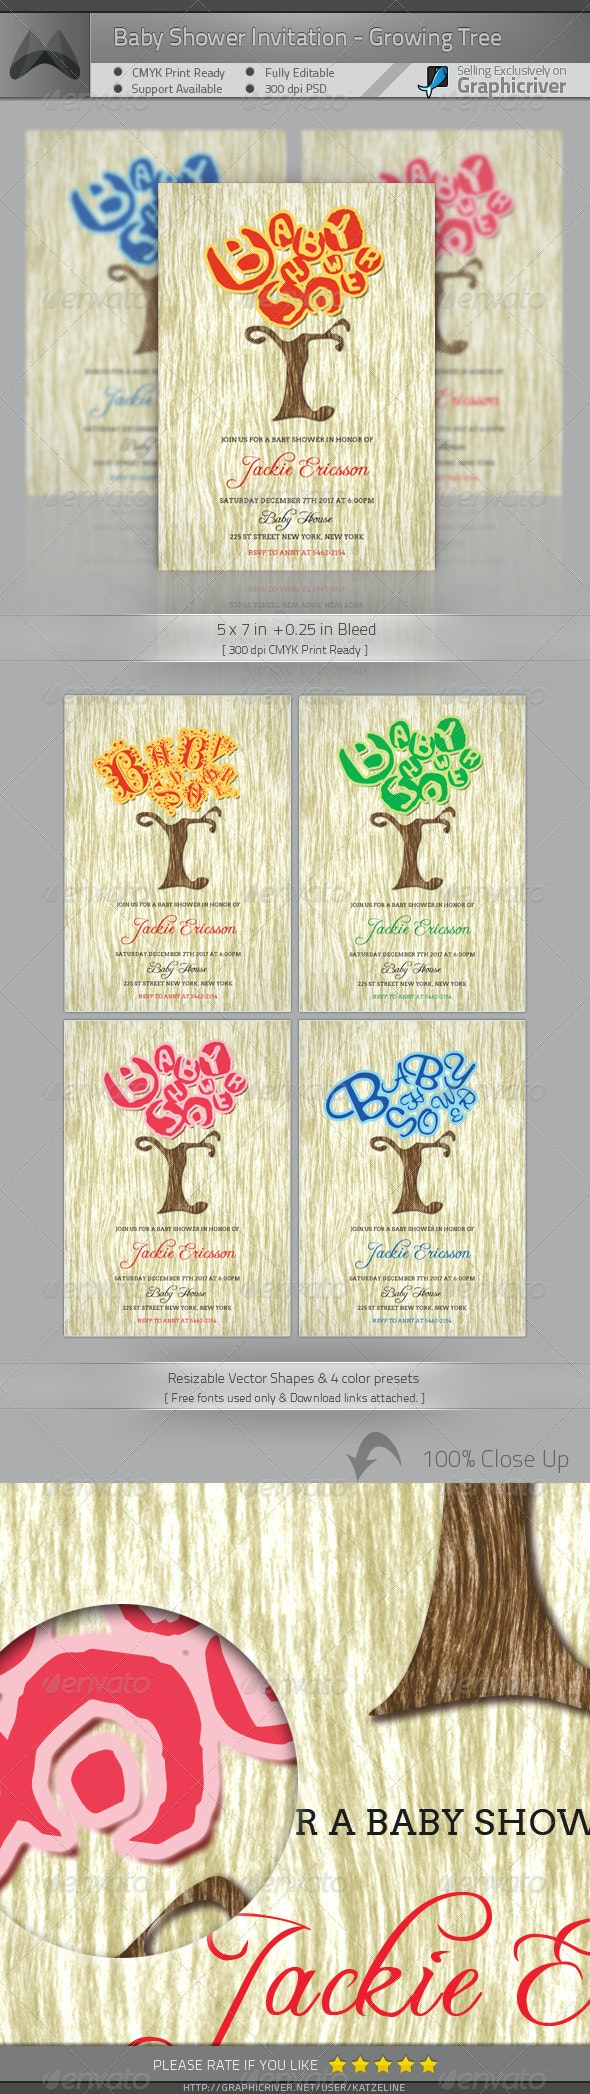 Baby Shower Invitation Card - Growing Tree - Family Cards & Invites